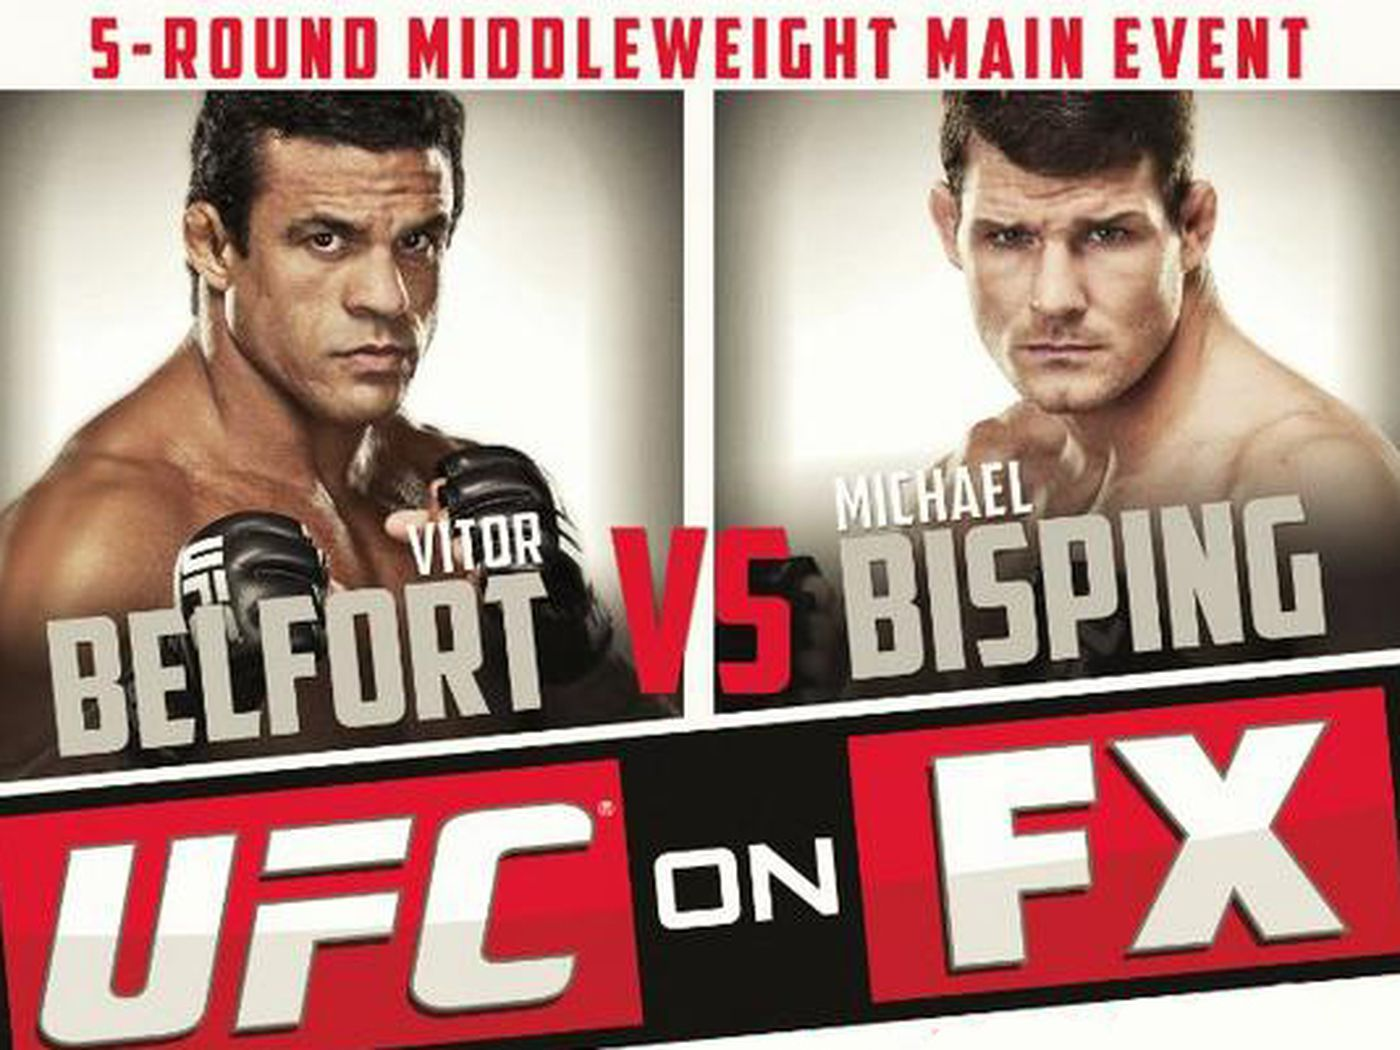 Ufc on fx 7 betting odds sporting odds betting calculator